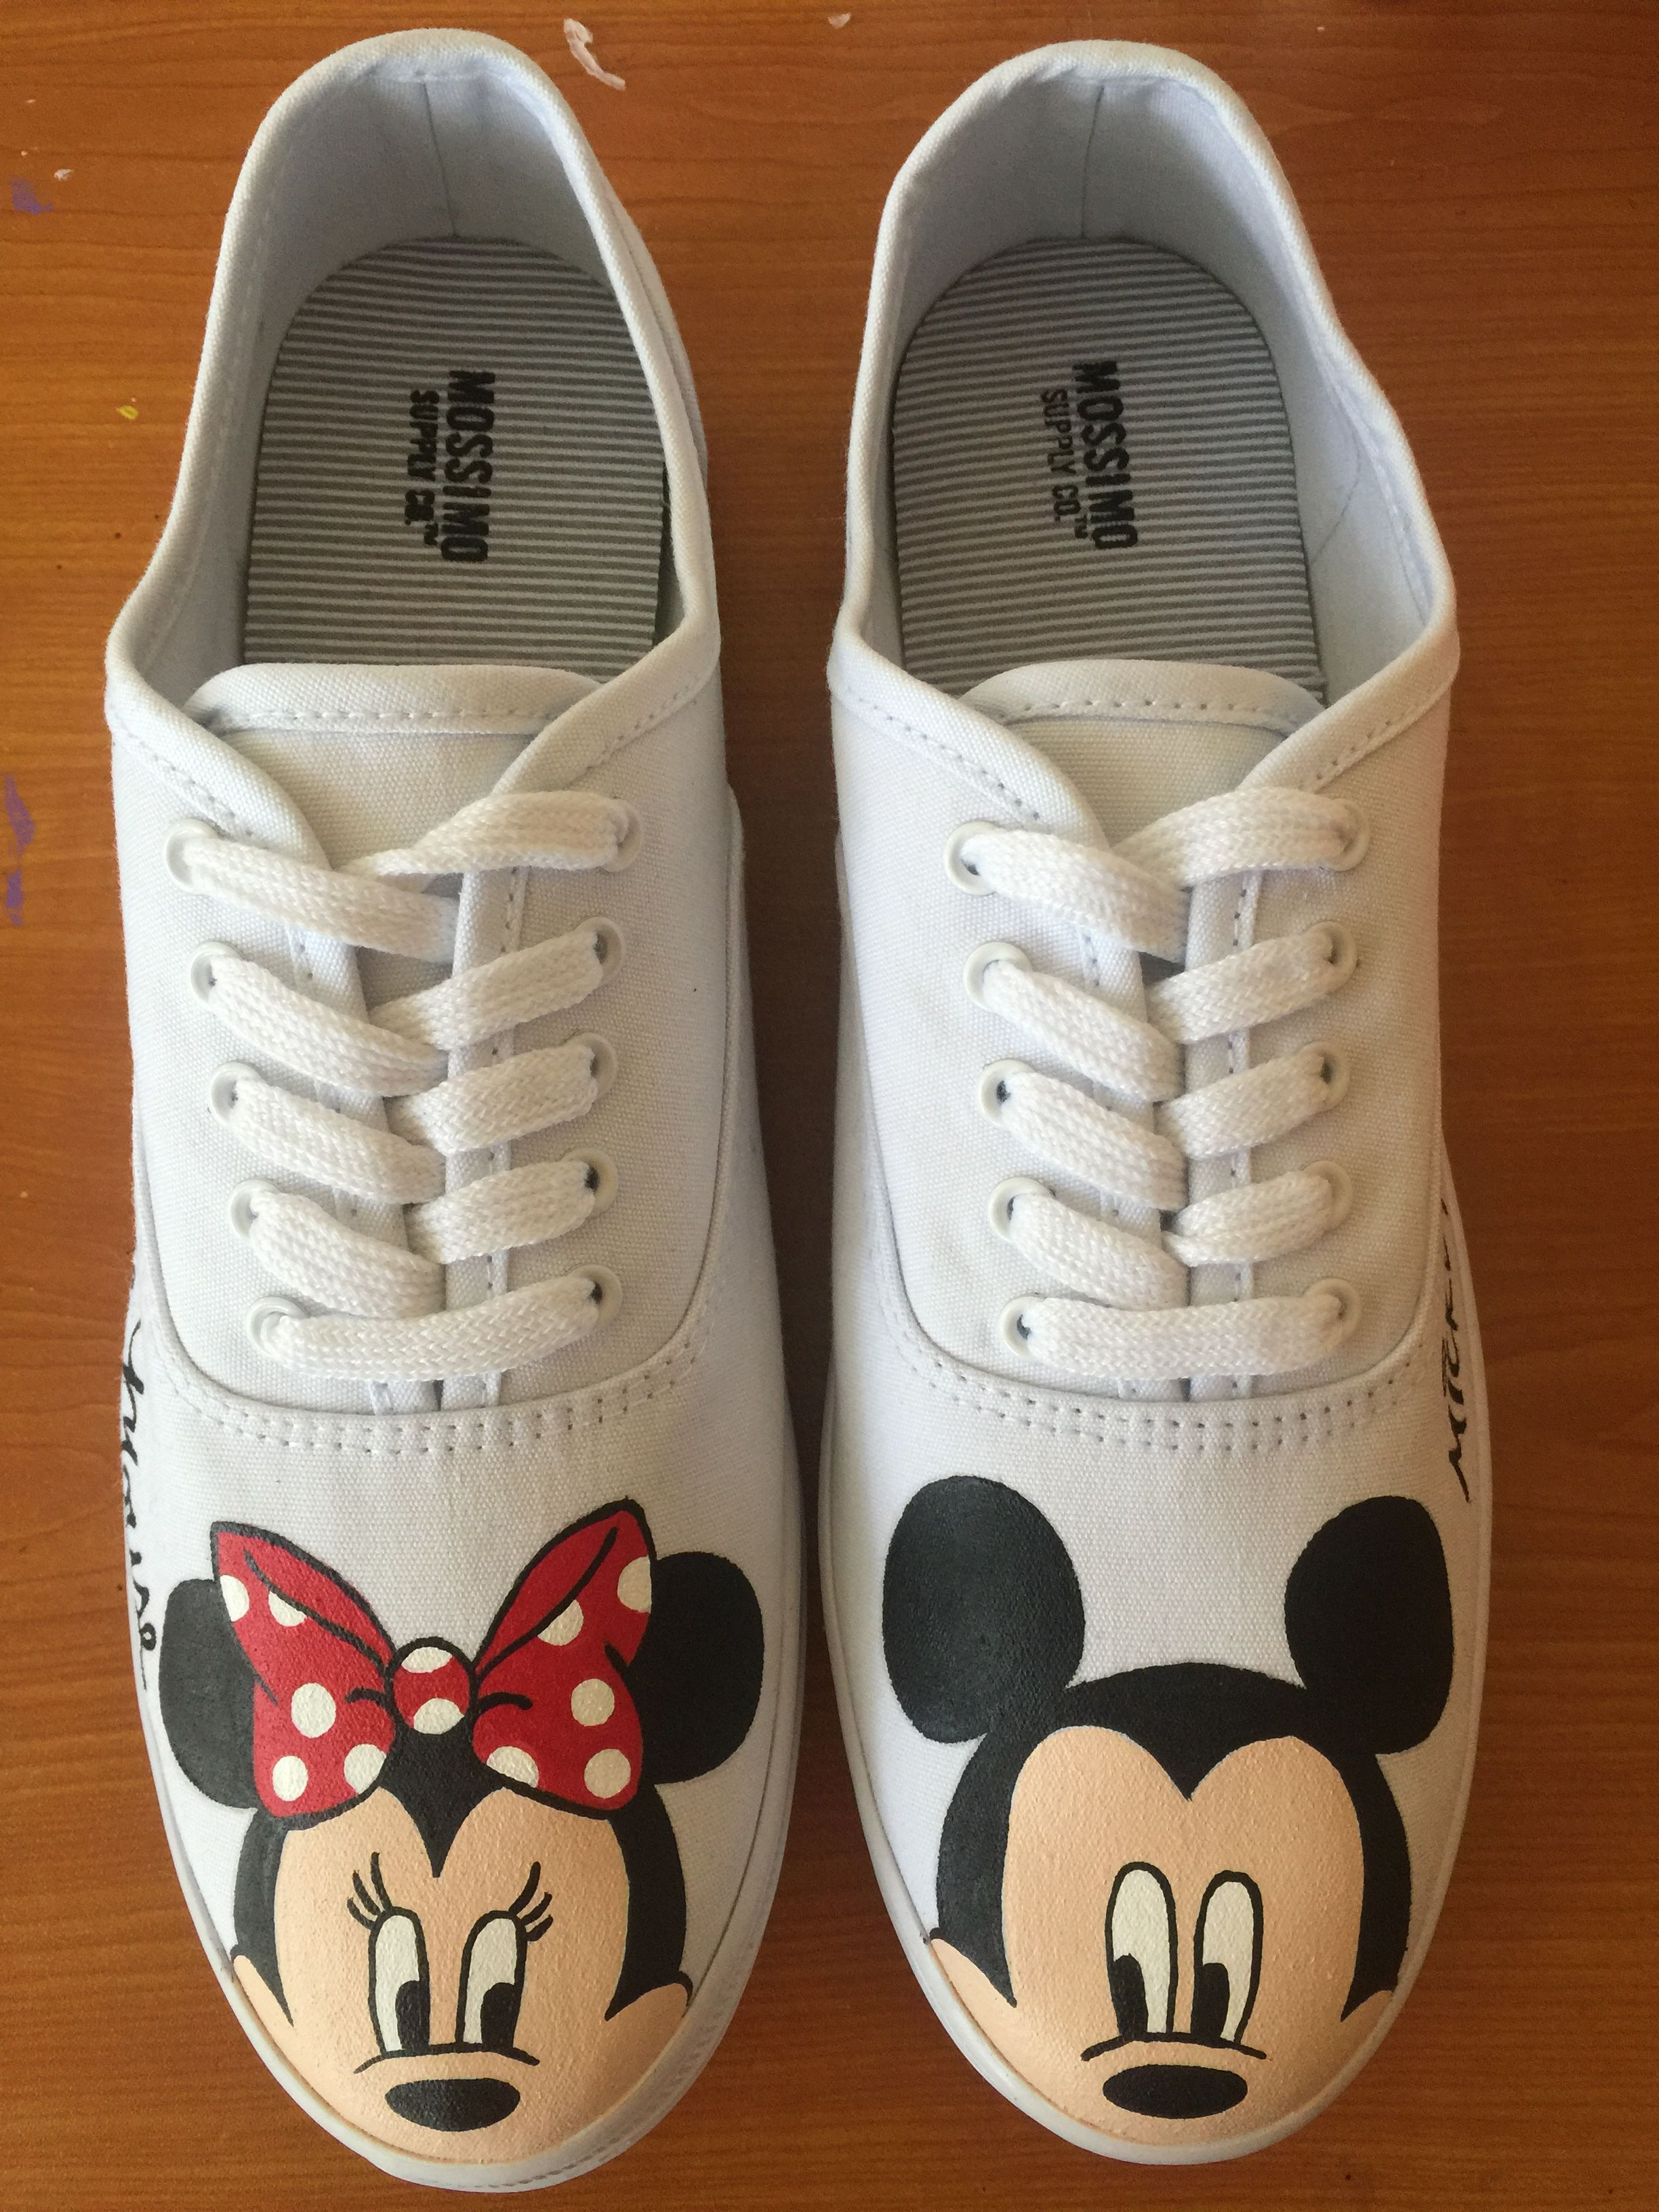 Mickey and Minnie Mouse shoes for women Visit my shop at